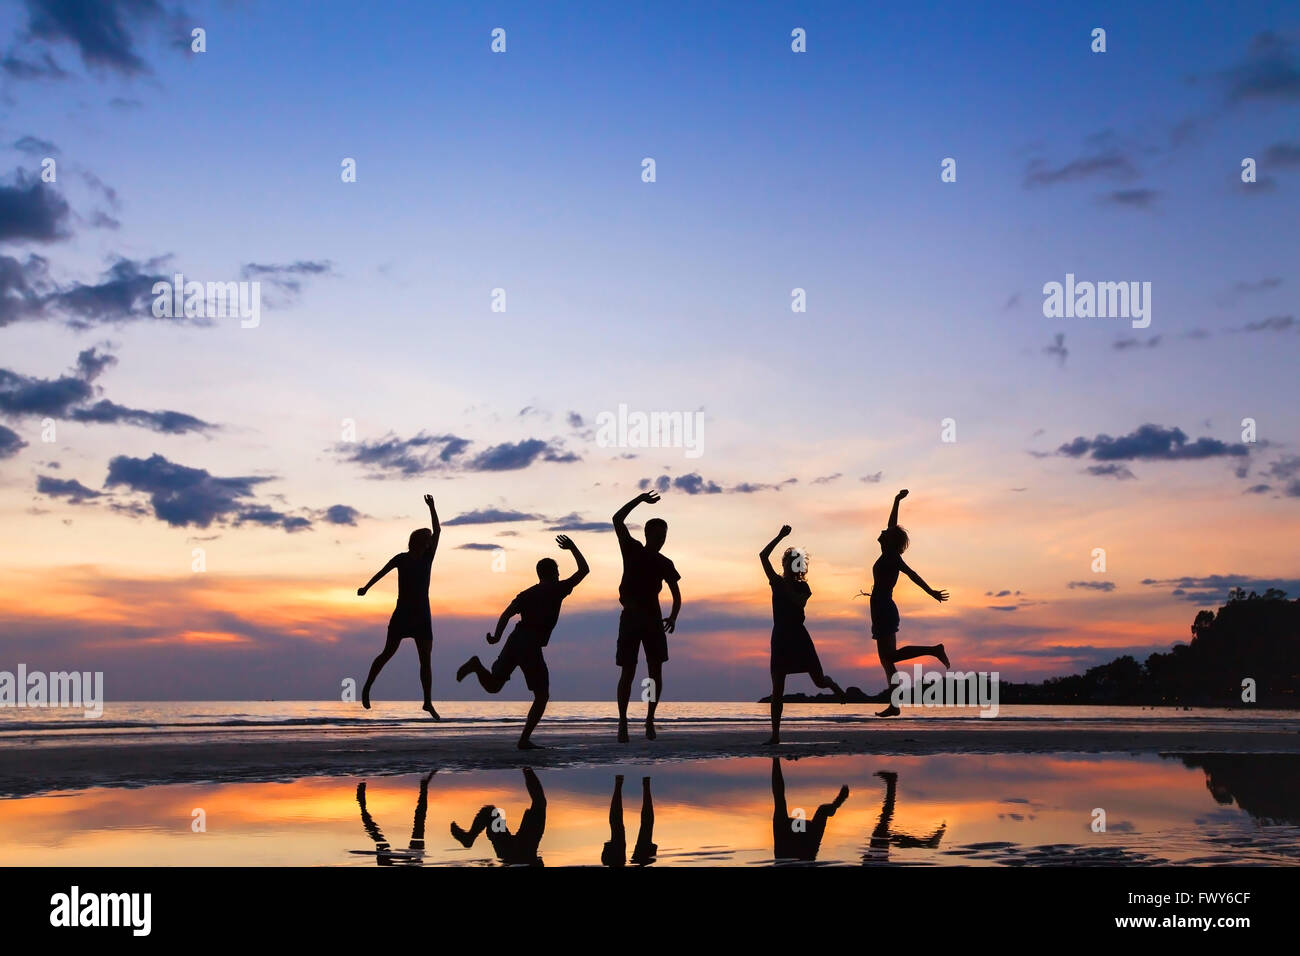 group of people jumping on the beach at sunset, silhouette of friends having fun together - Stock Image